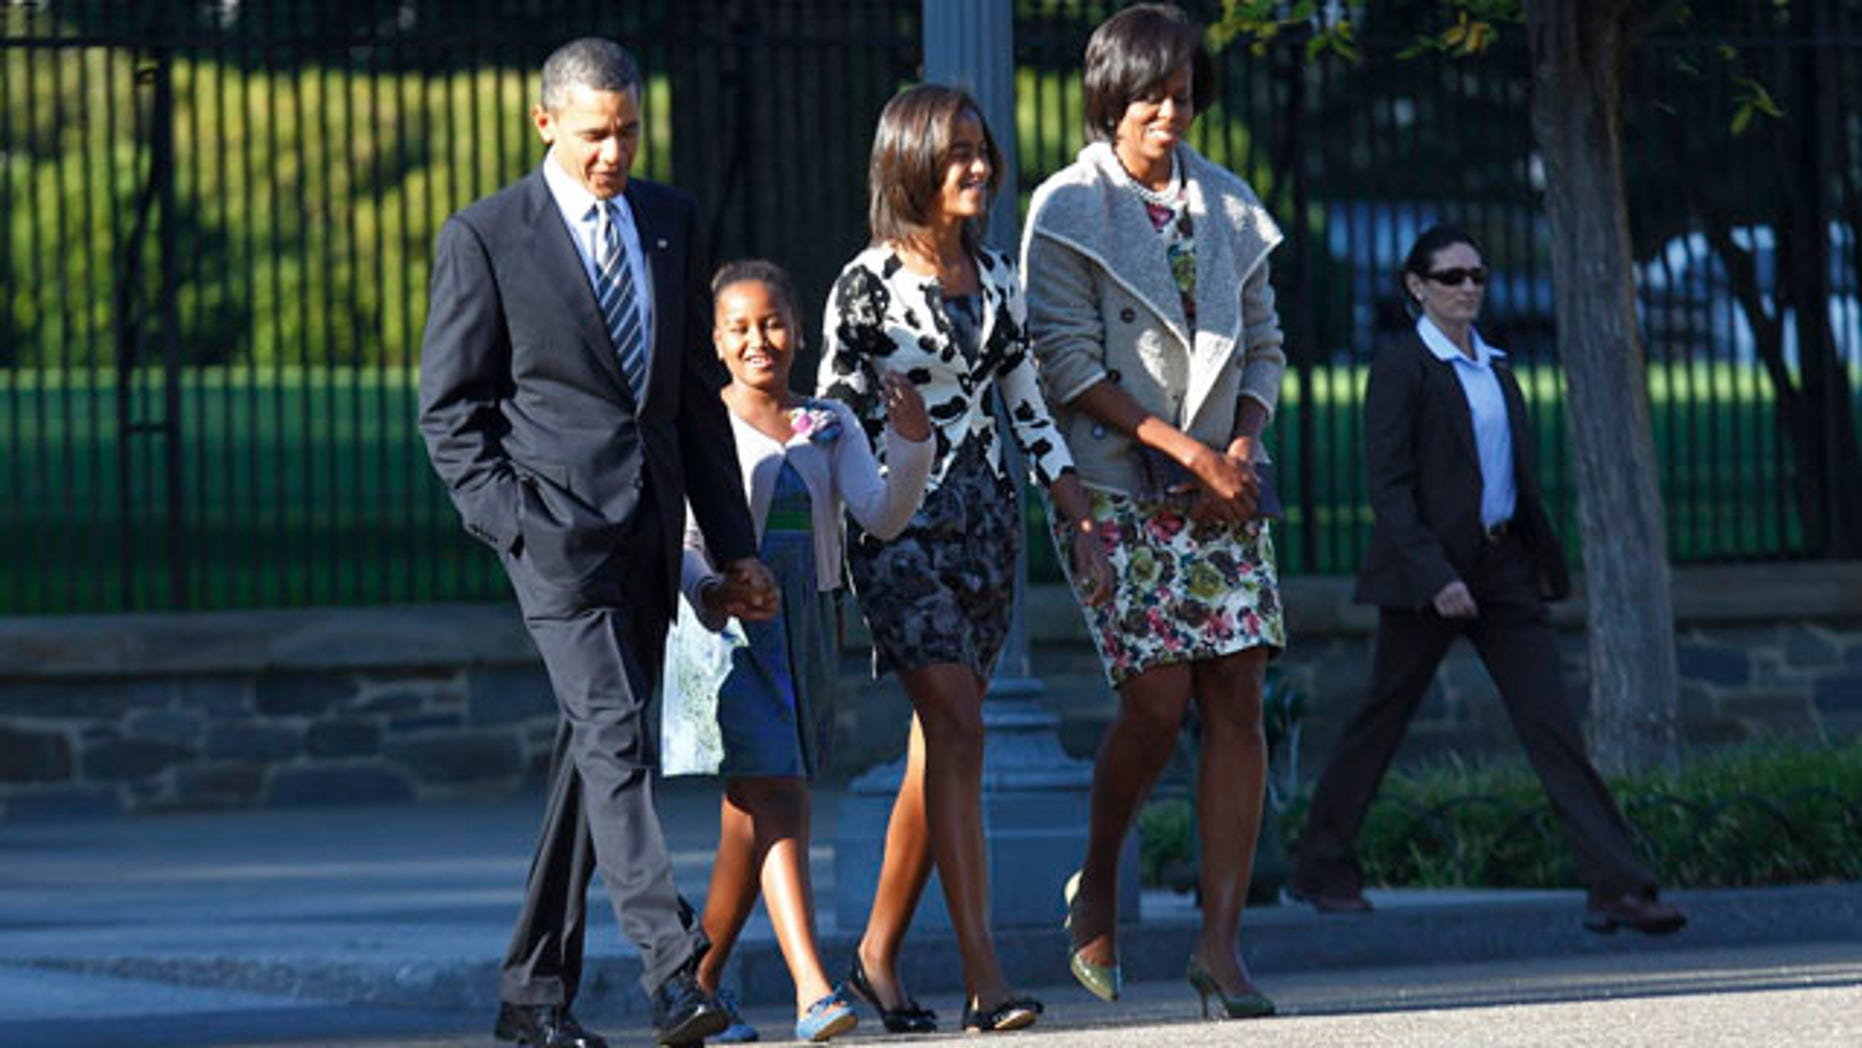 Sept. 19: President Obama, first lady Michelle Obama, and daughters, from left, Sasha and Malia walk from the White House across Pennyslvania Avenue to service at St. John's Episcopal Church in Washington.